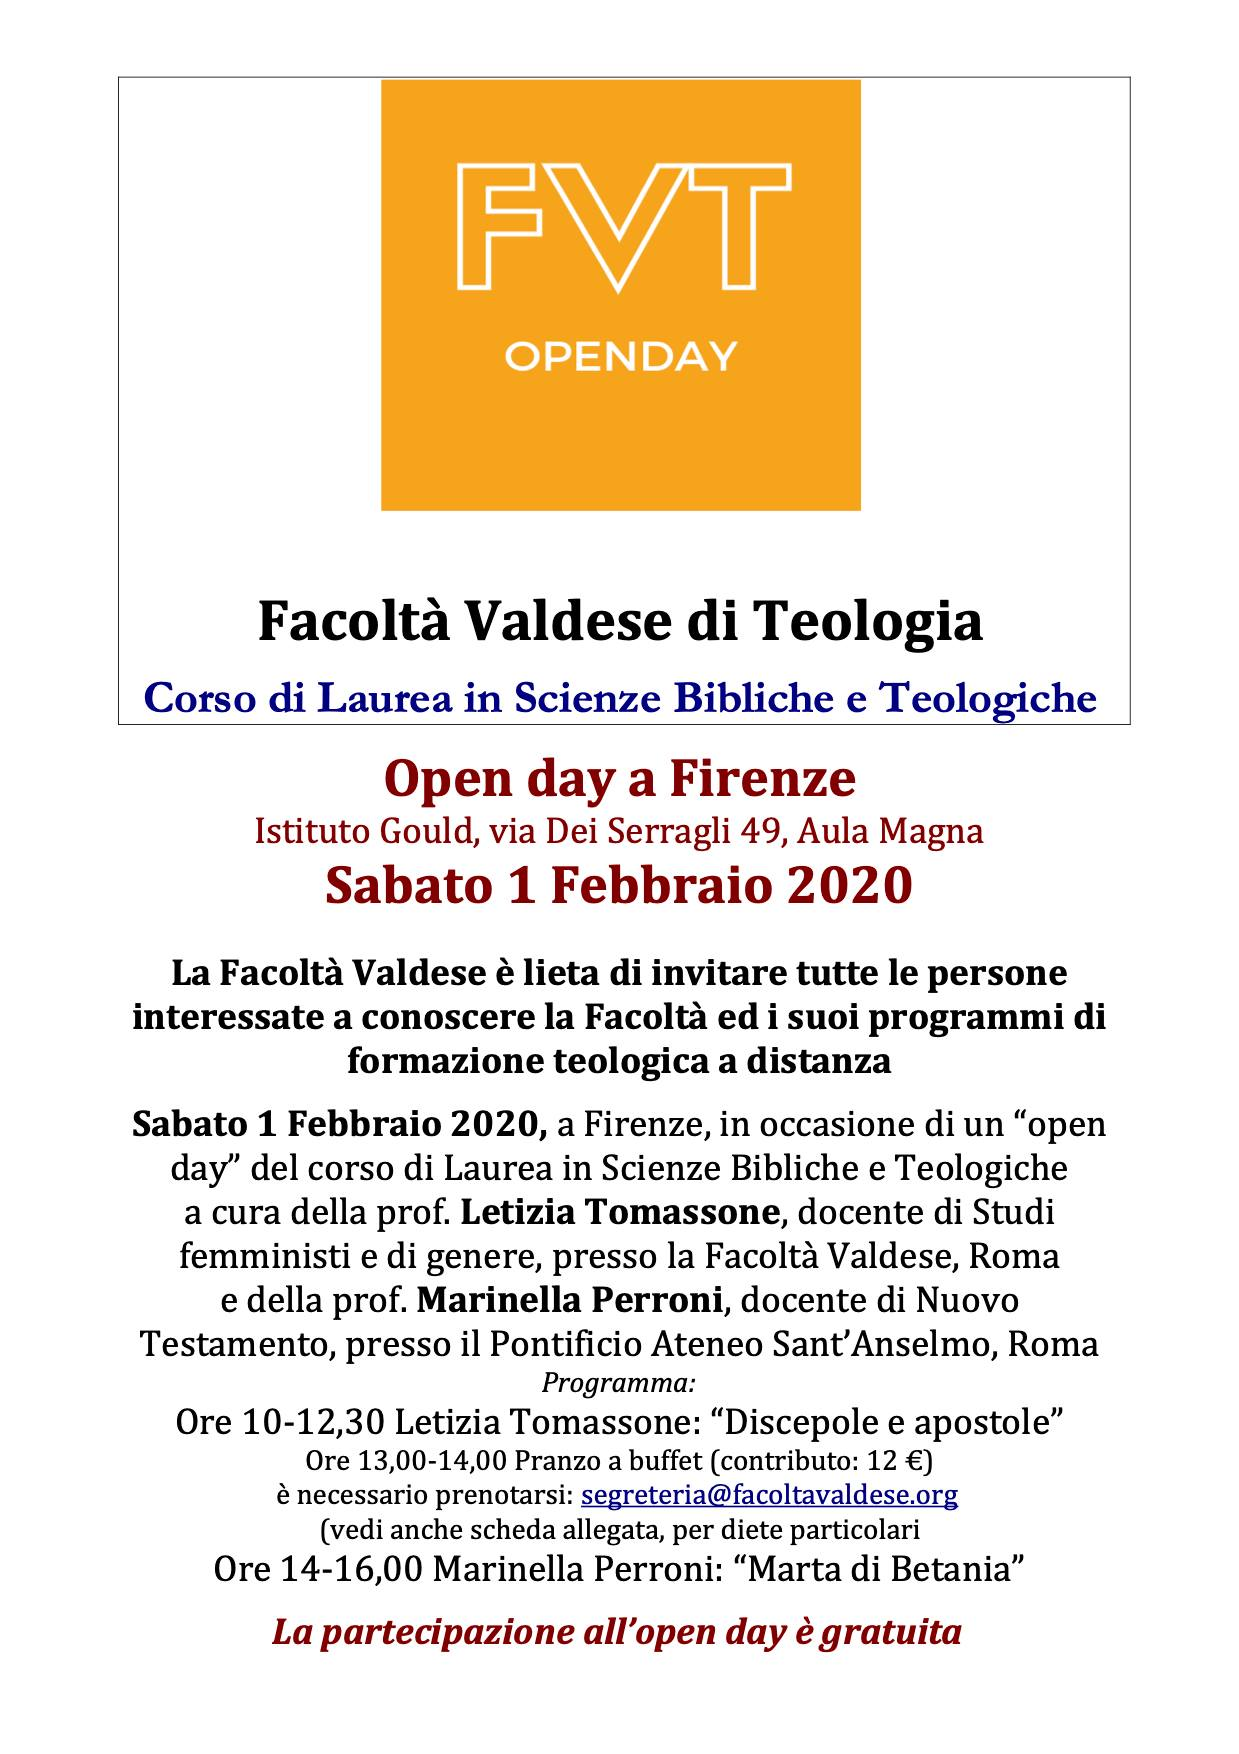 01.02.2020, FIRENZE: FVT Openday @ Istituto Gould, Aula Magna